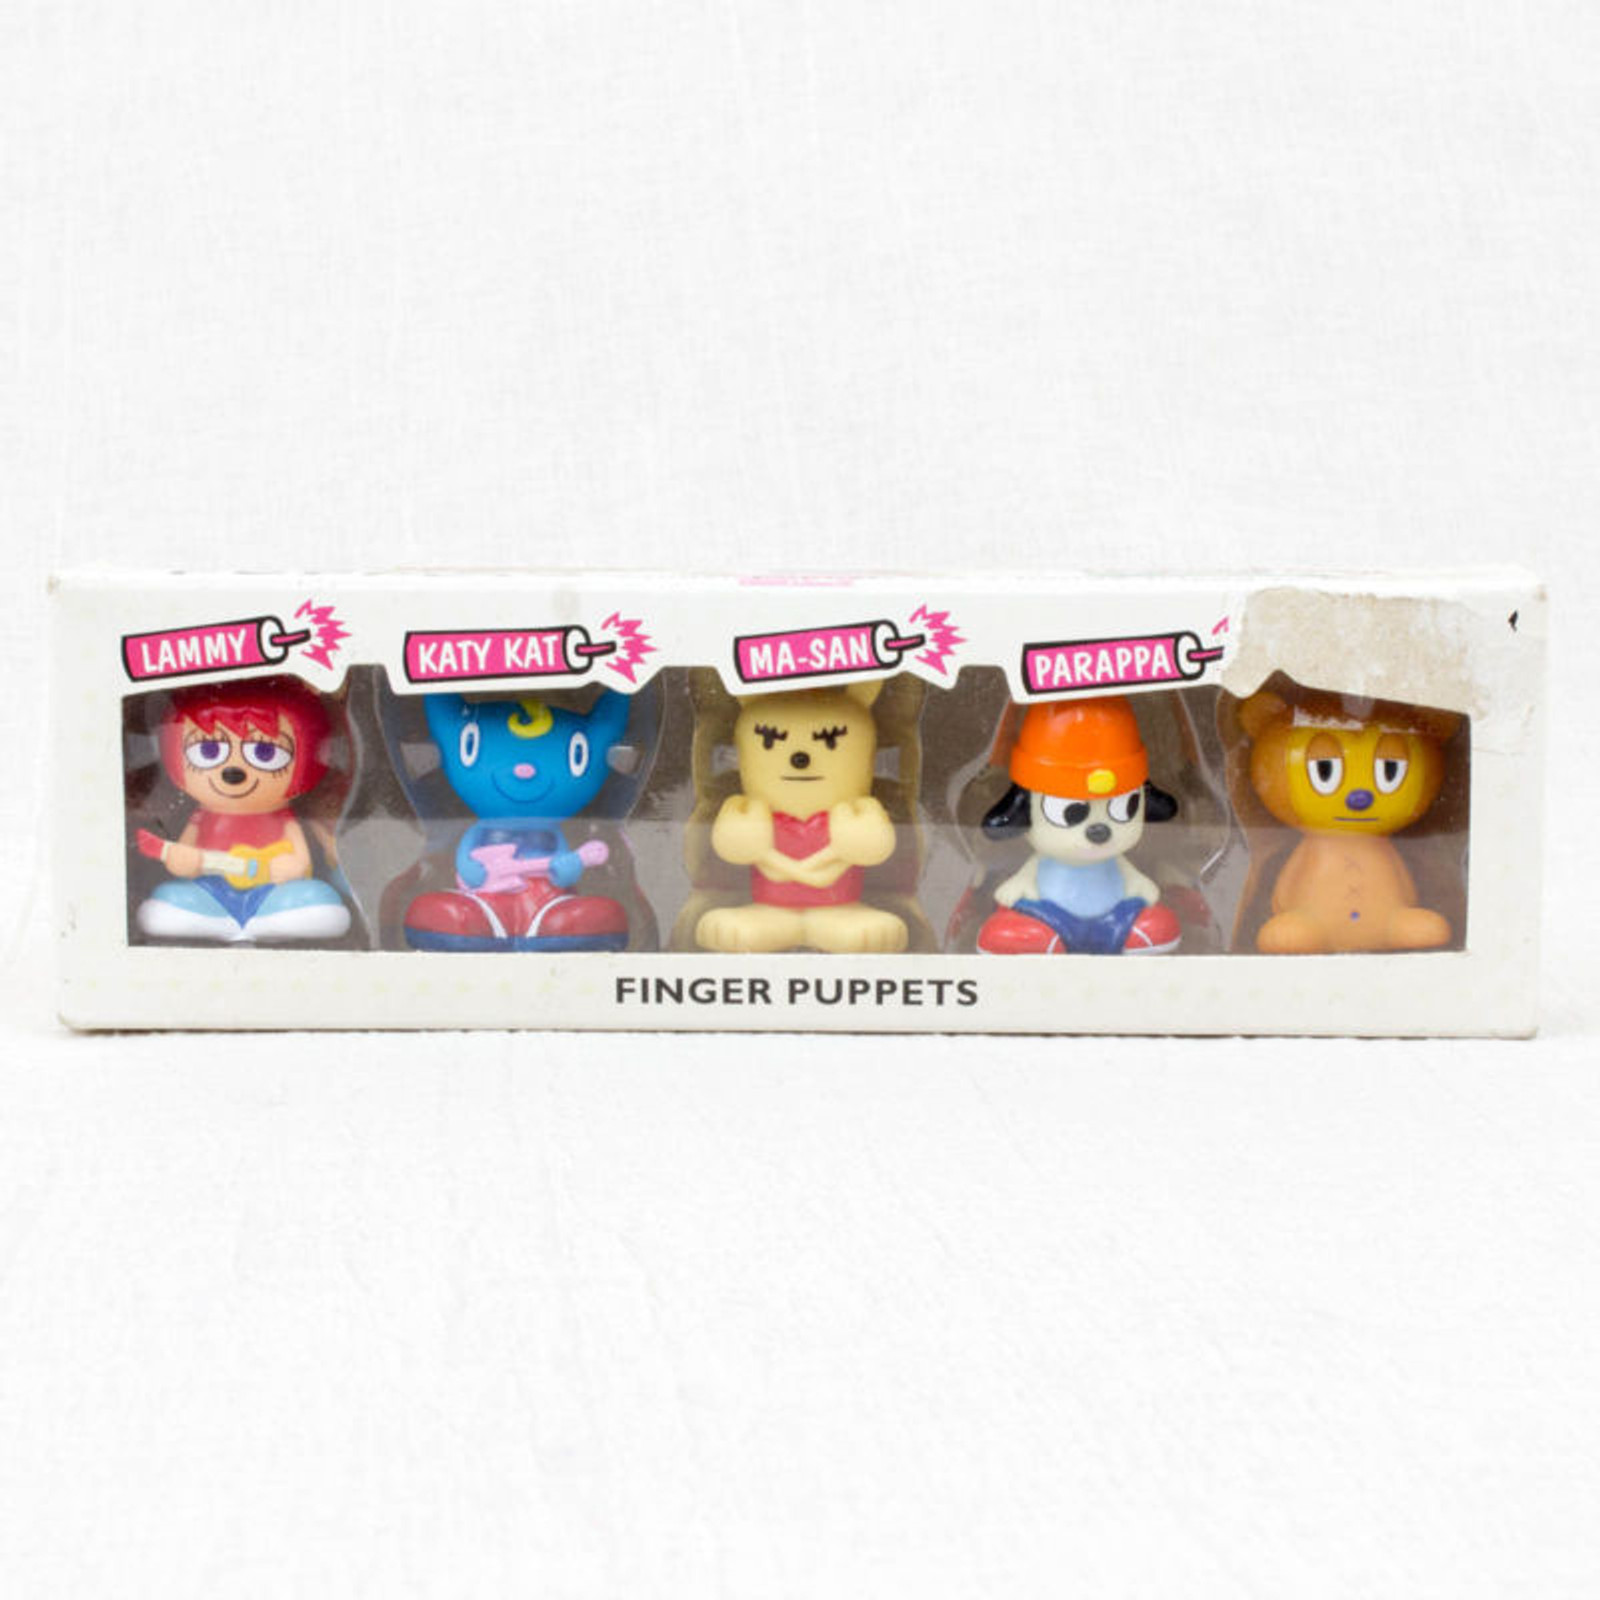 Parappa The Rapper Umjammer Lammy All Star Finger Puppet 5pc Set Figure JAPAN